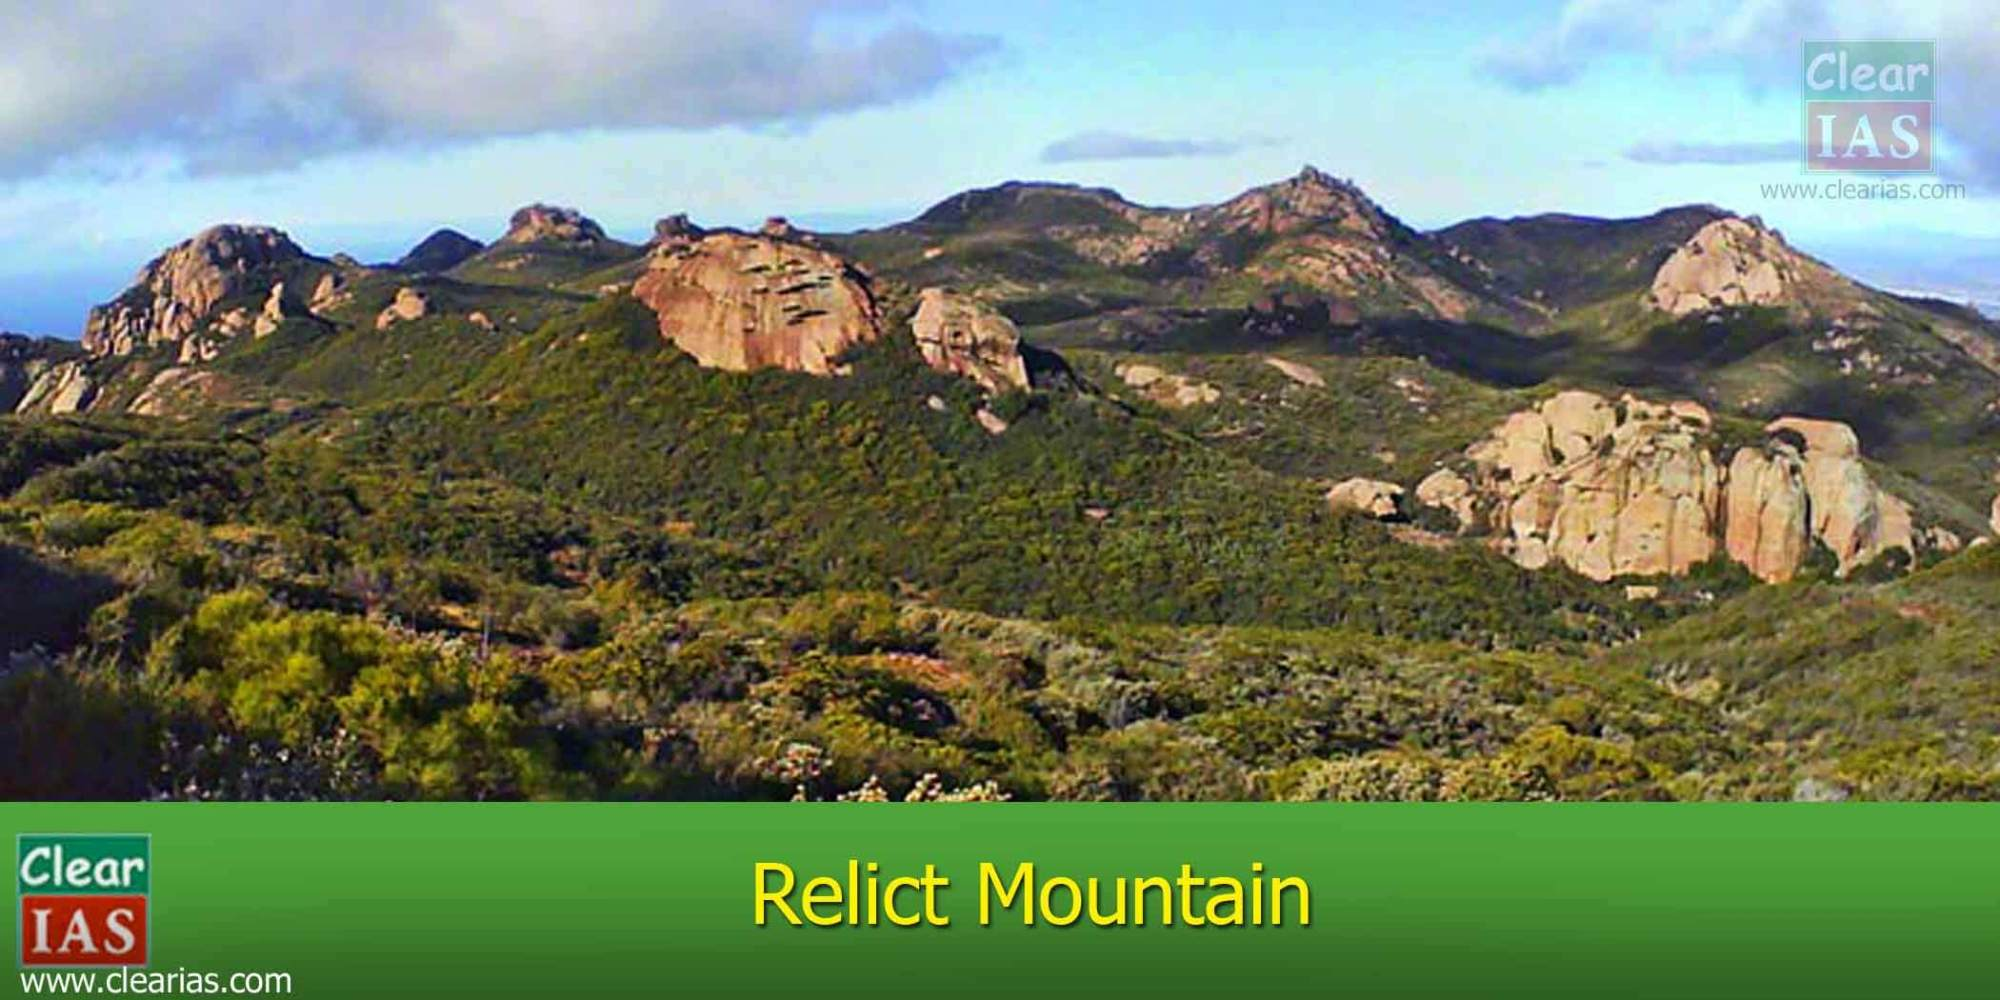 hight resolution of image of a relict mountain